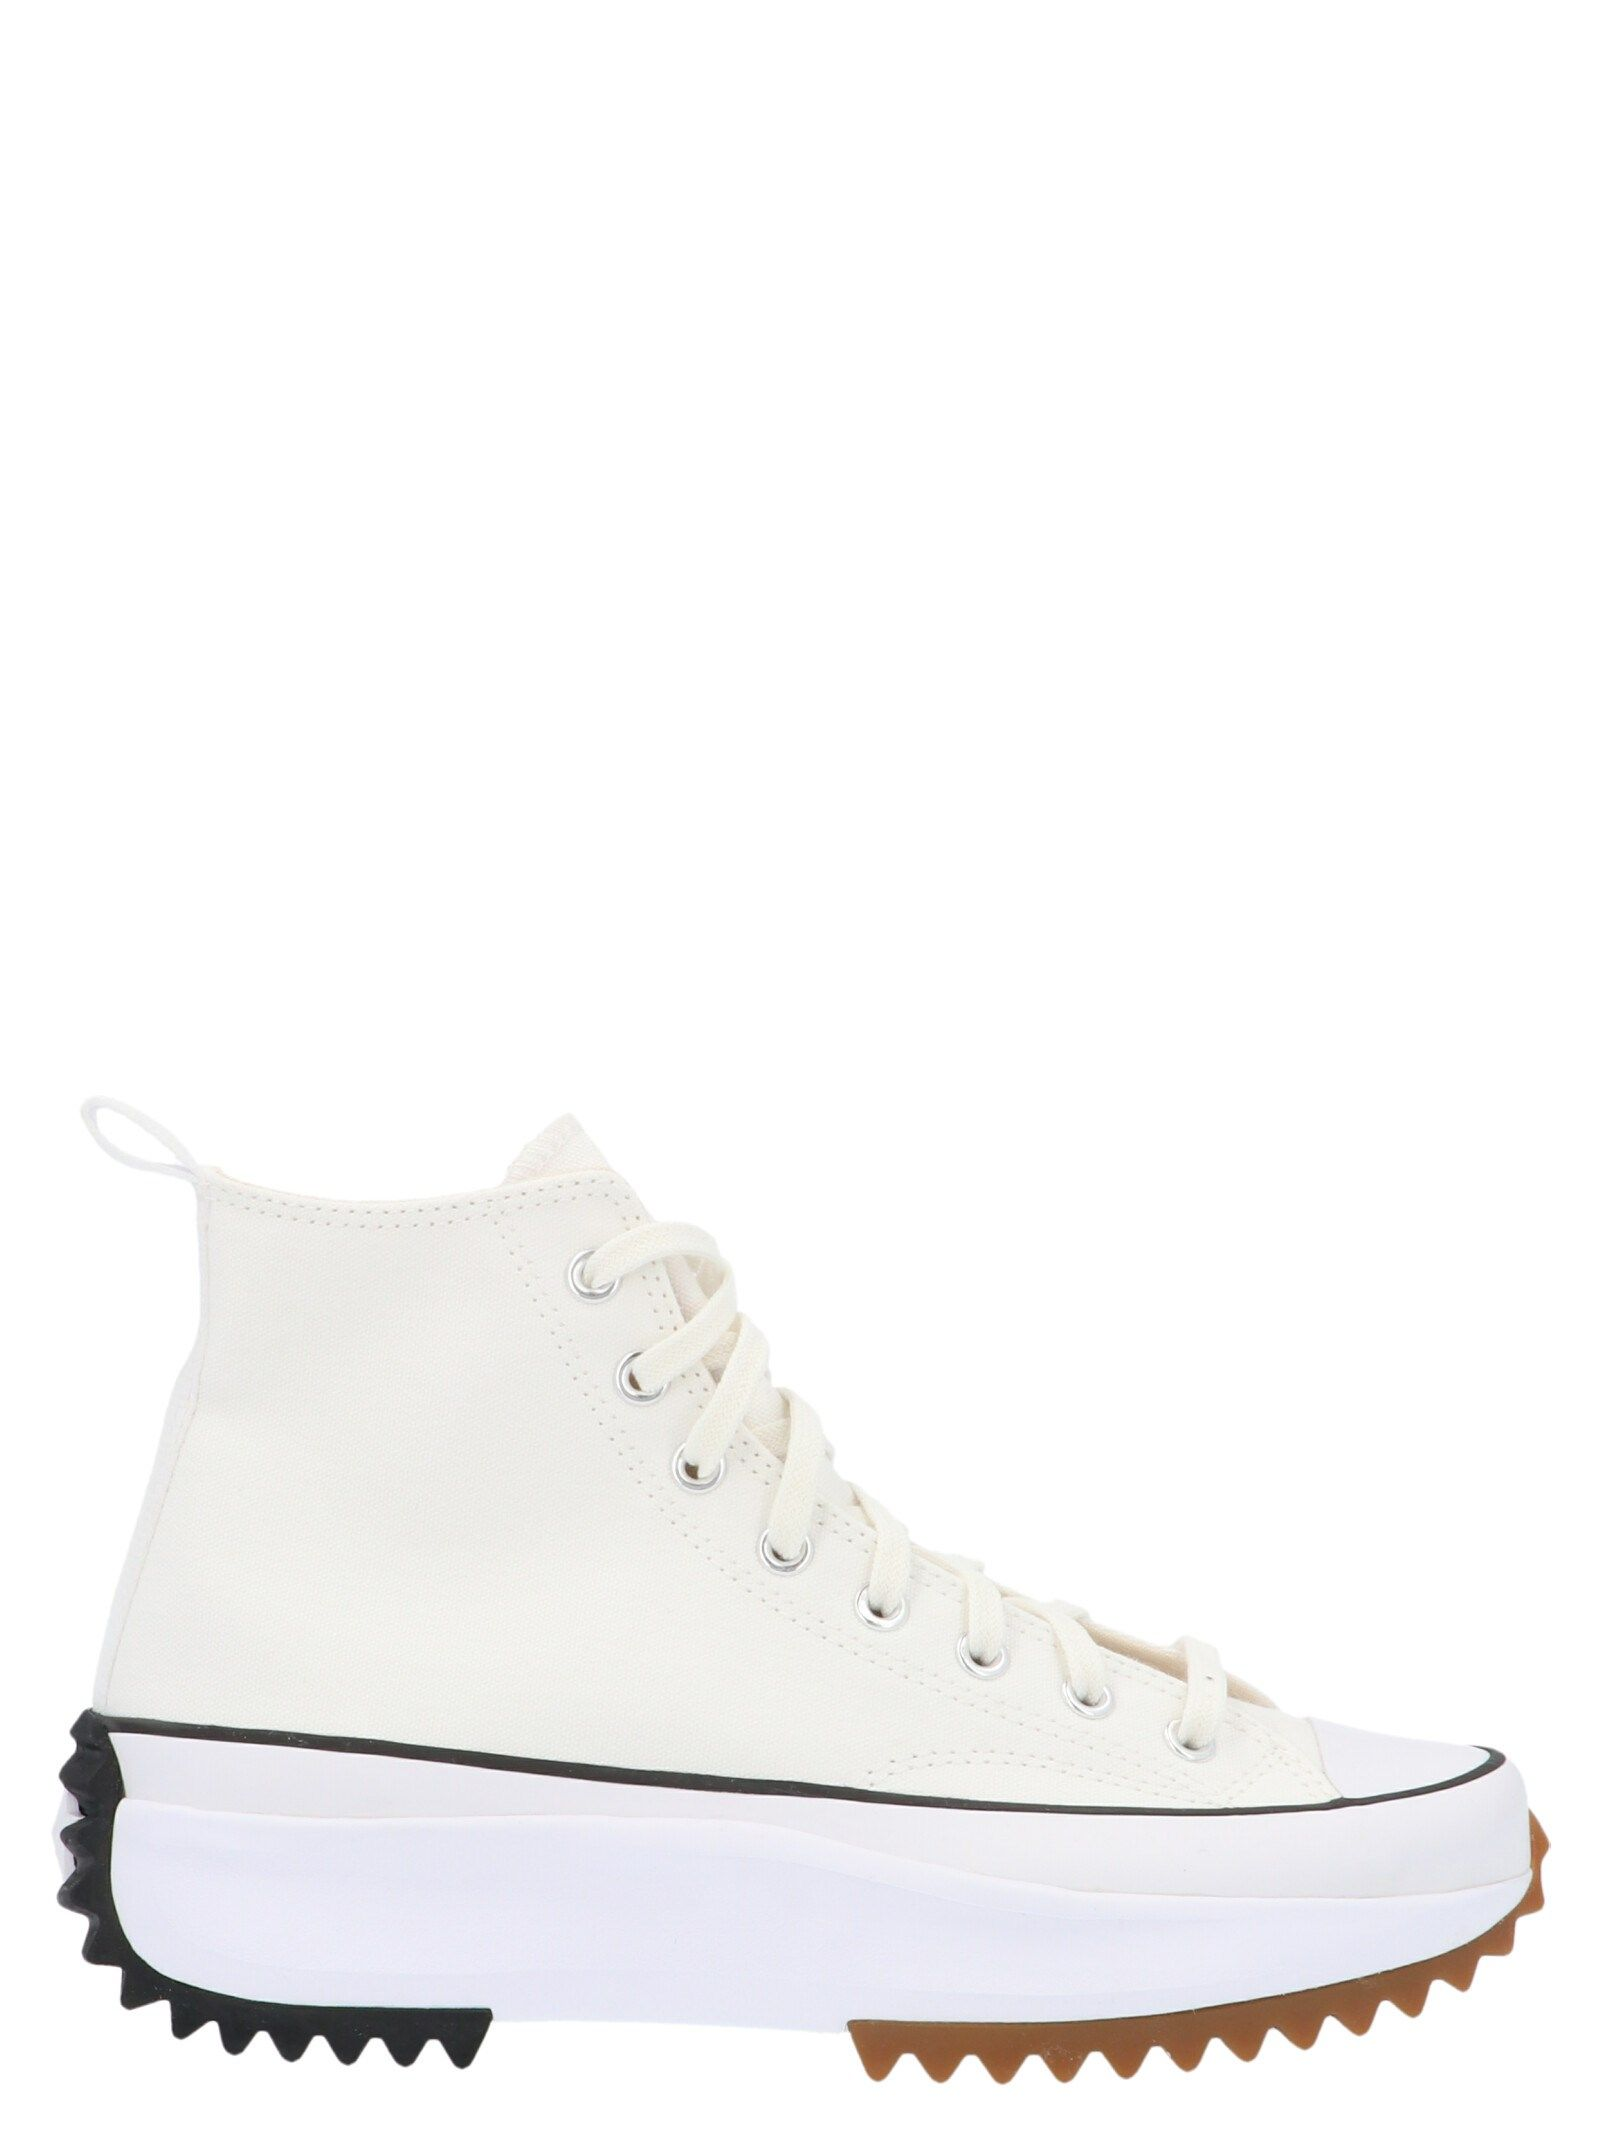 Converse Mid heels CONVERSE WOMEN'S 166799C WHITE FABRIC HI TOP SNEAKERS